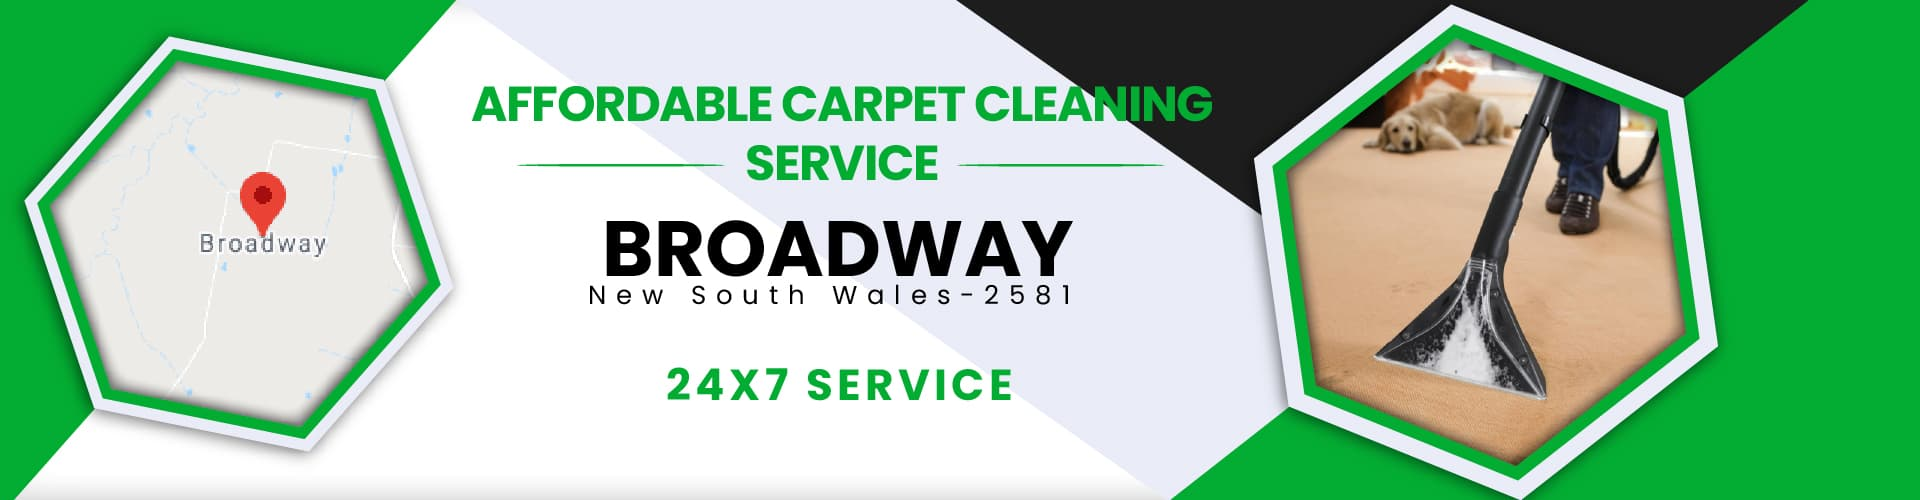 Carpet Cleaning Broadway